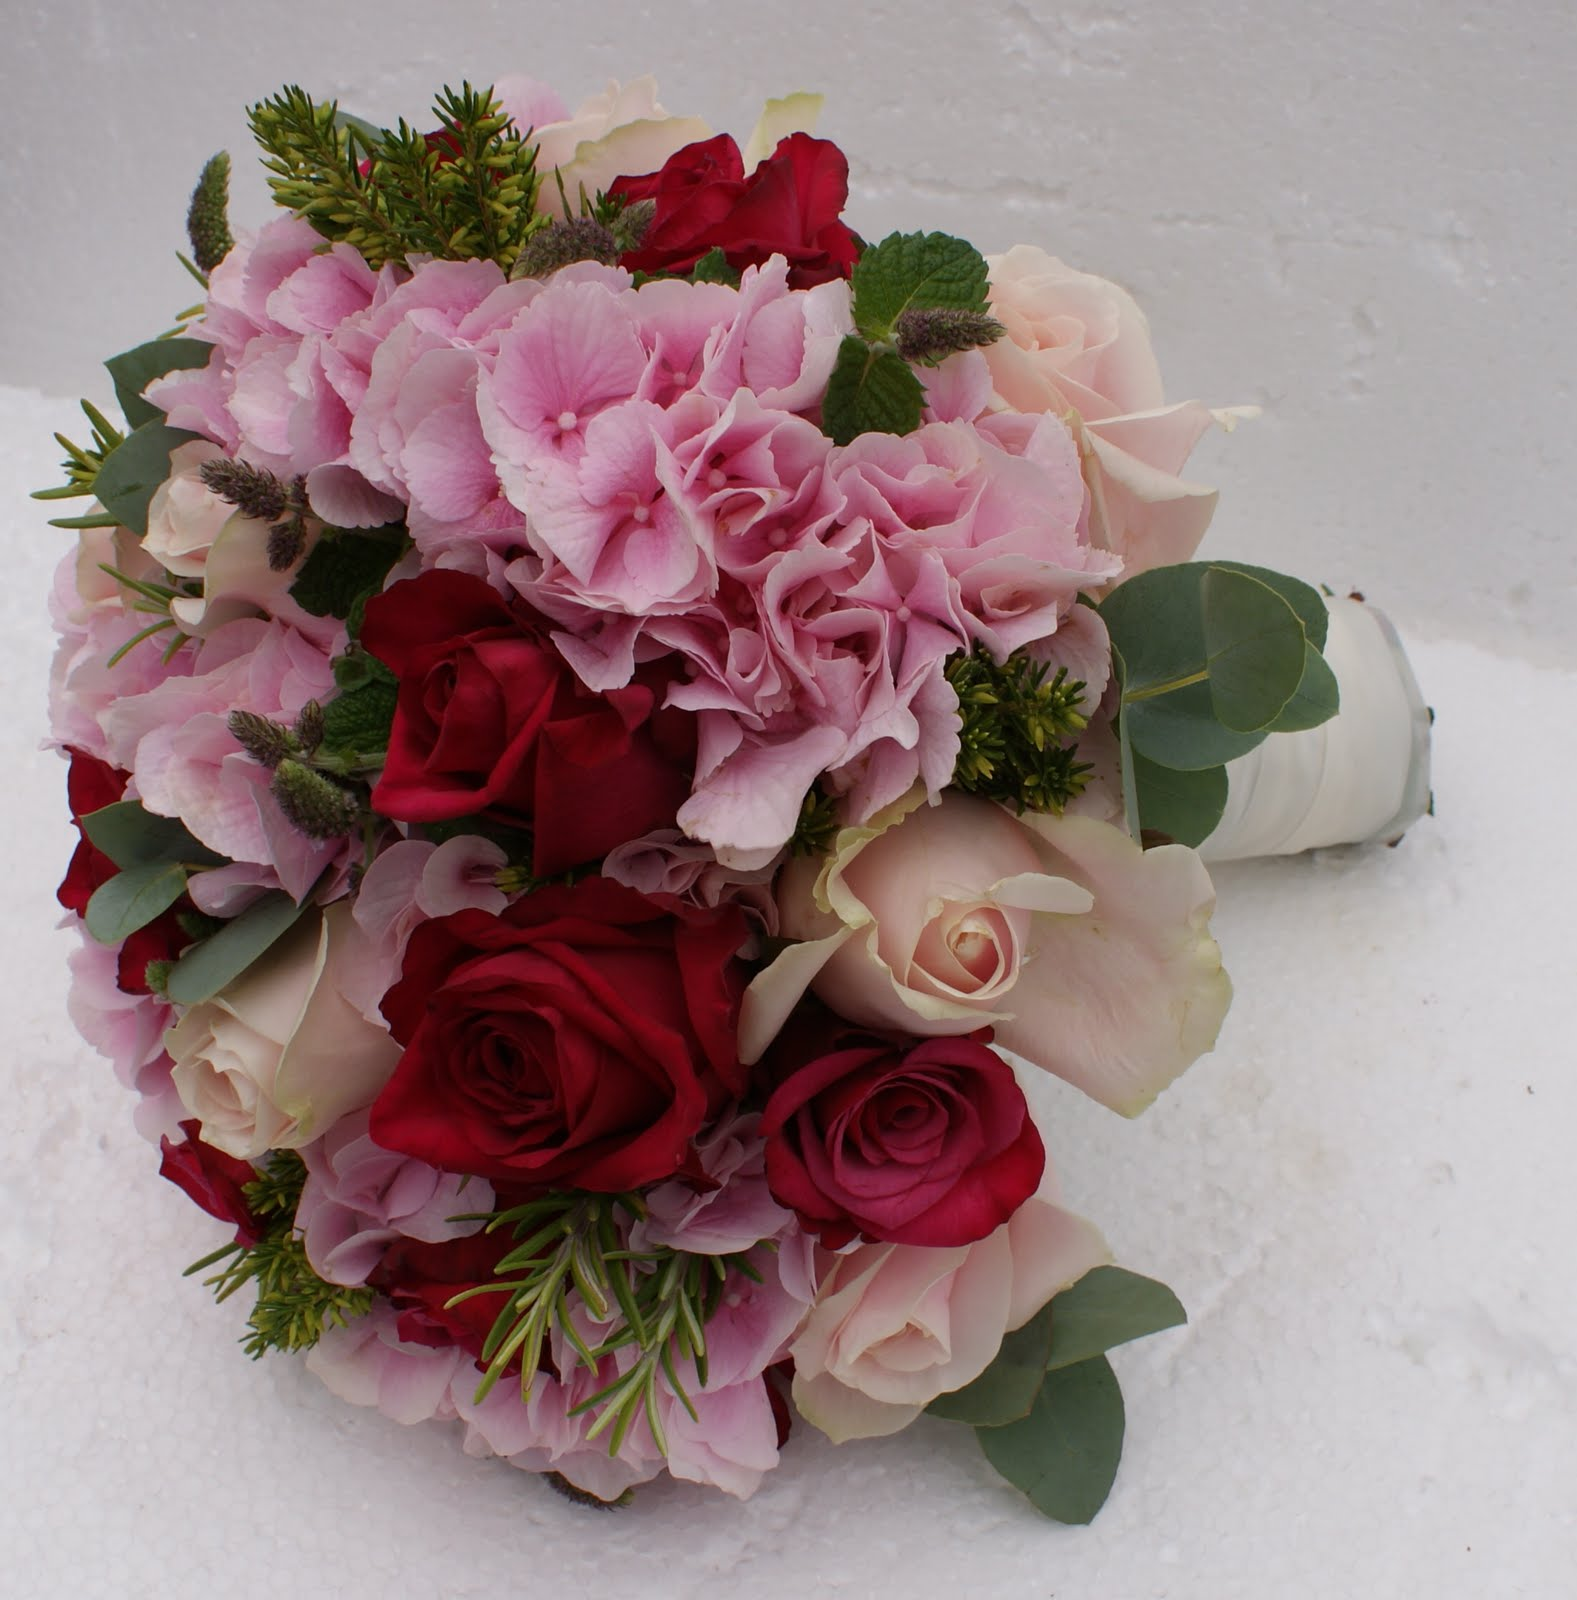 Wedding Flowers Keighley: The Flower Company: Alex Sidgreaves